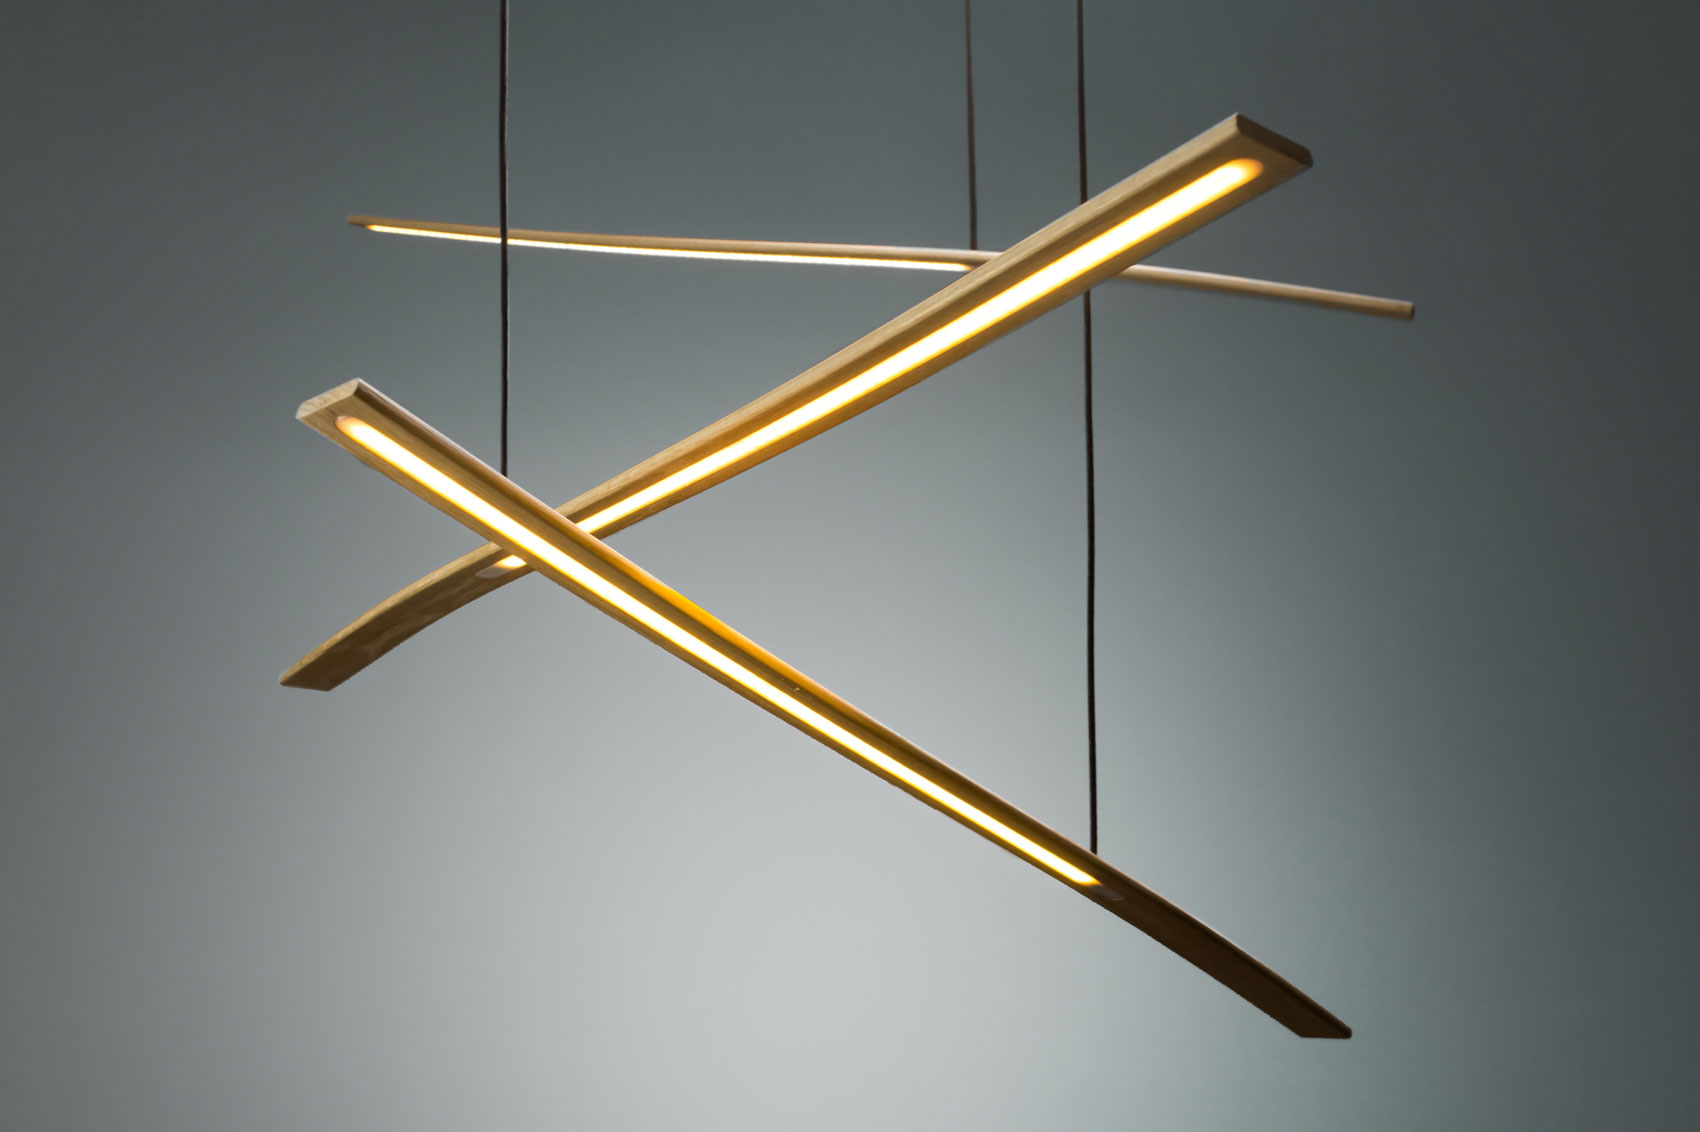 copper-lighting-balance3.jpg